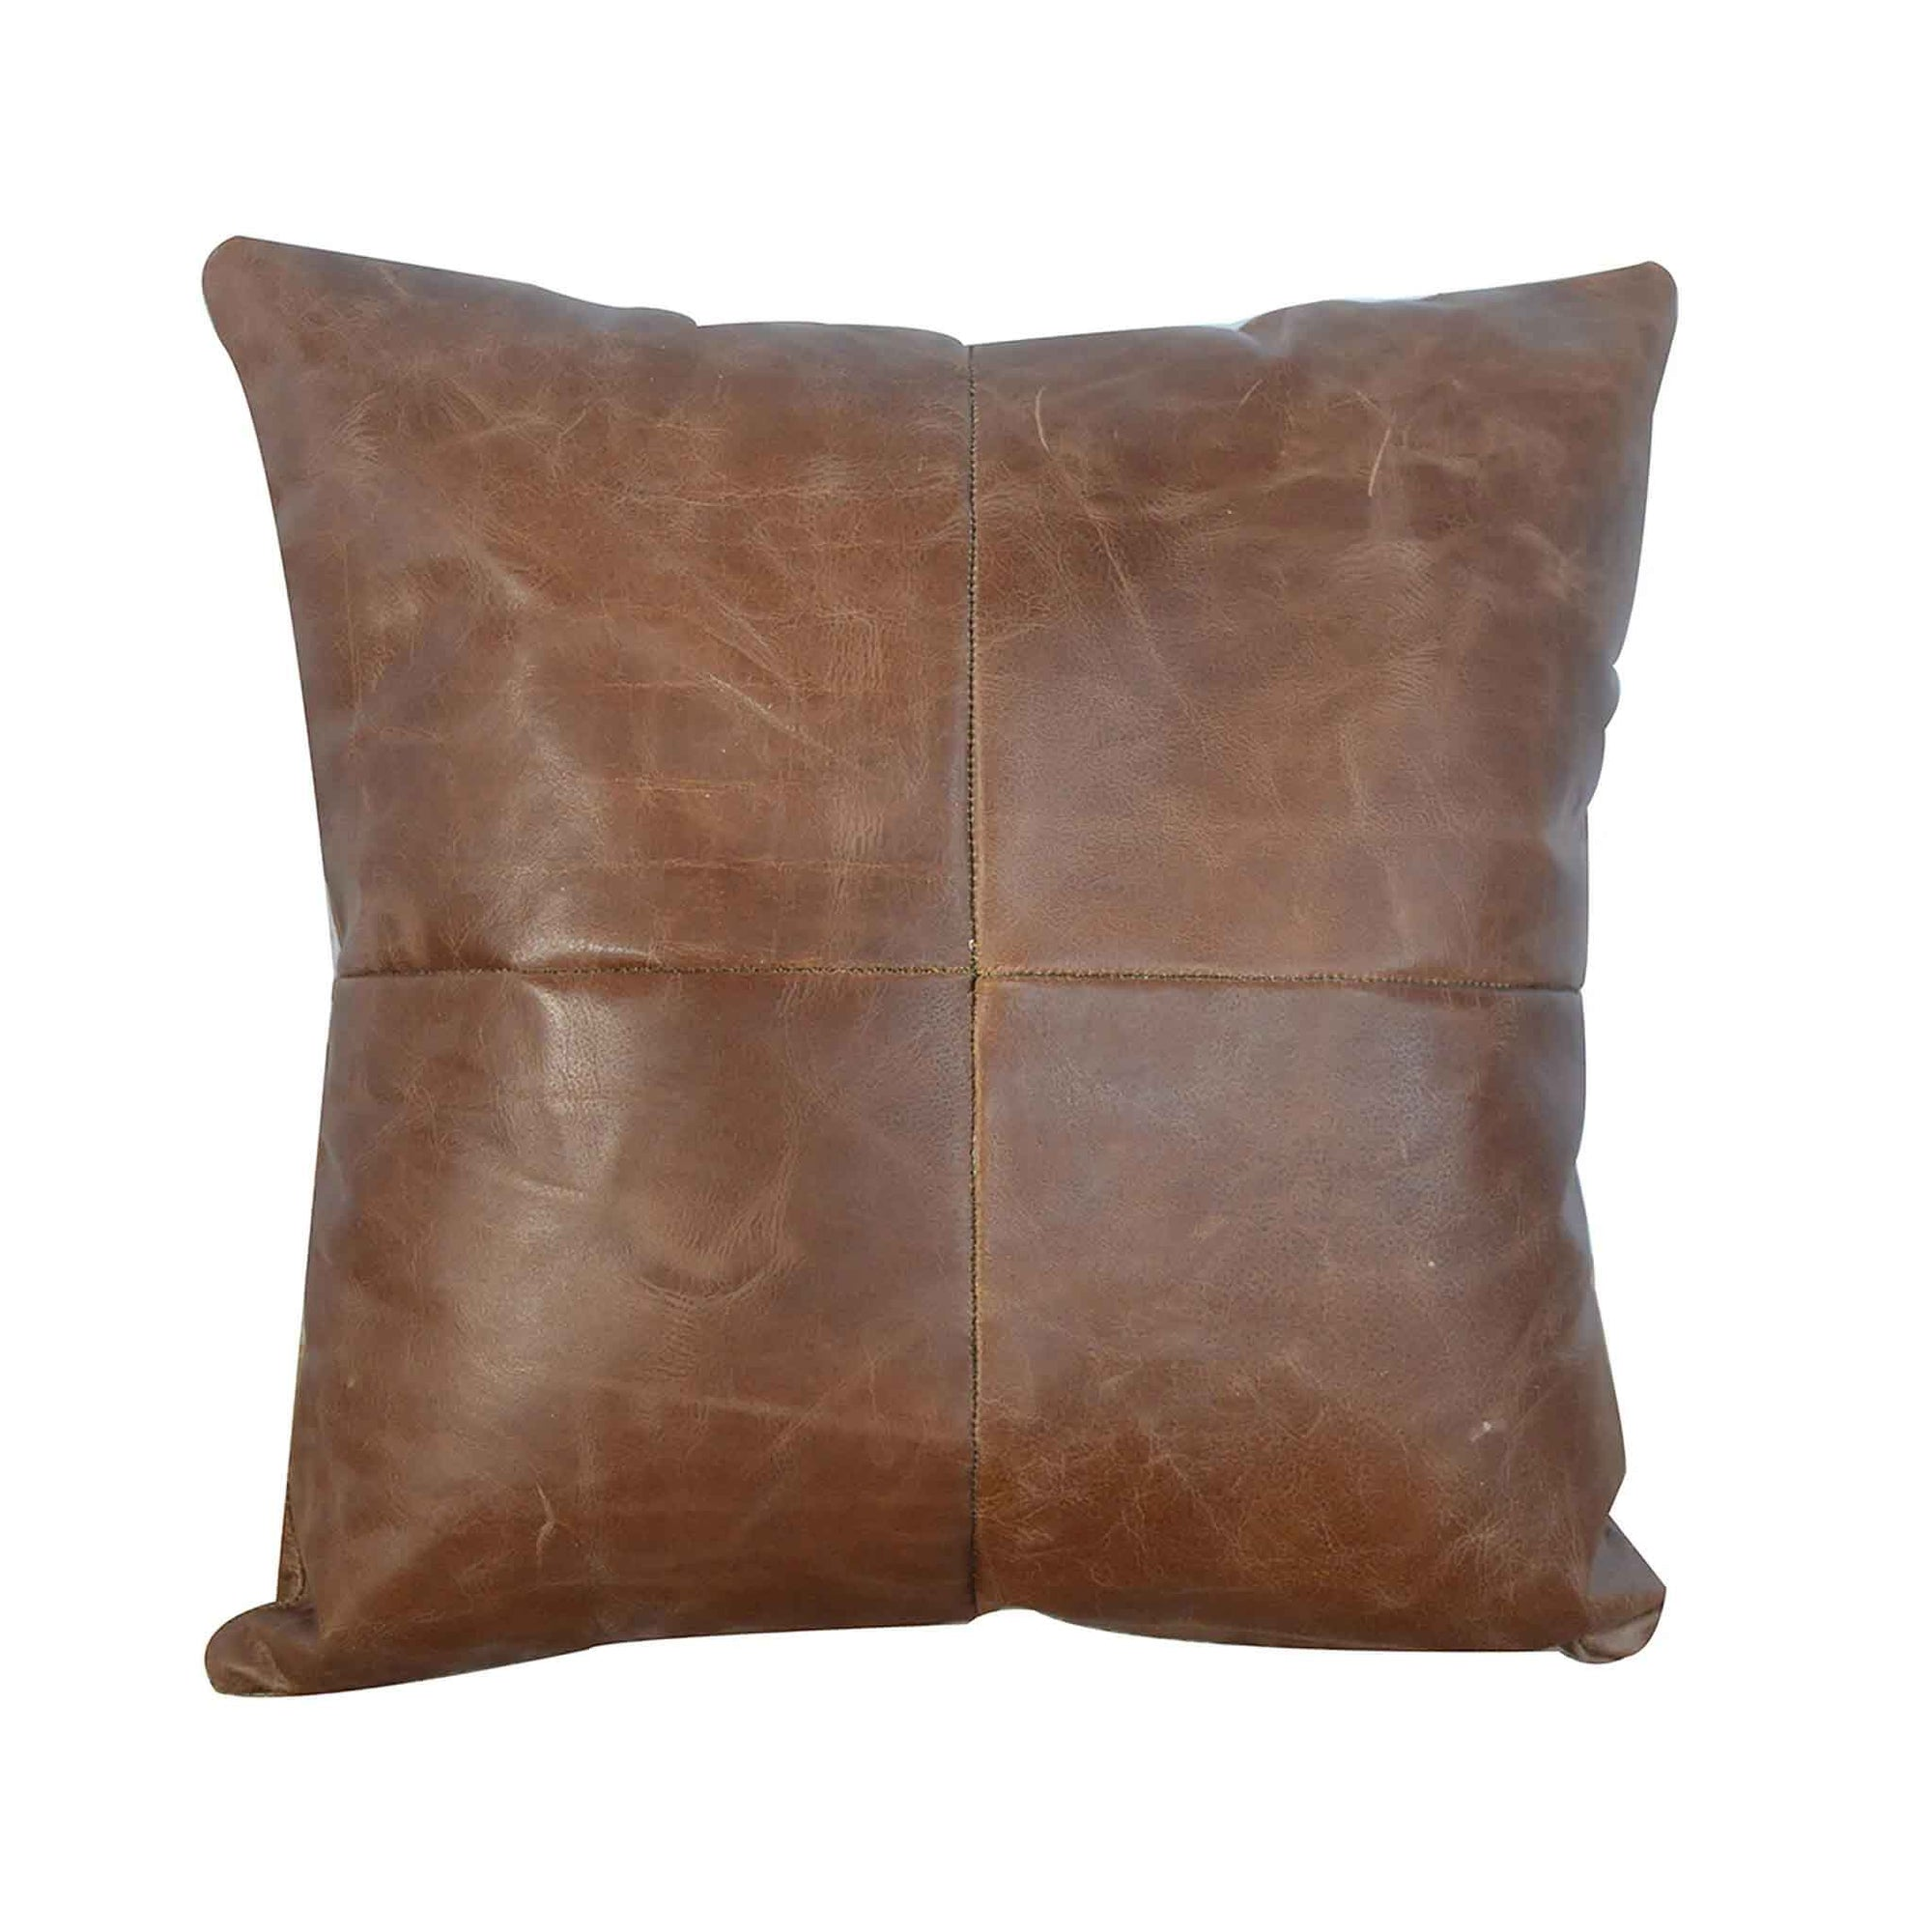 The Artisan Brown Buffalo Hide Leather Cushion from Roseland Furniture